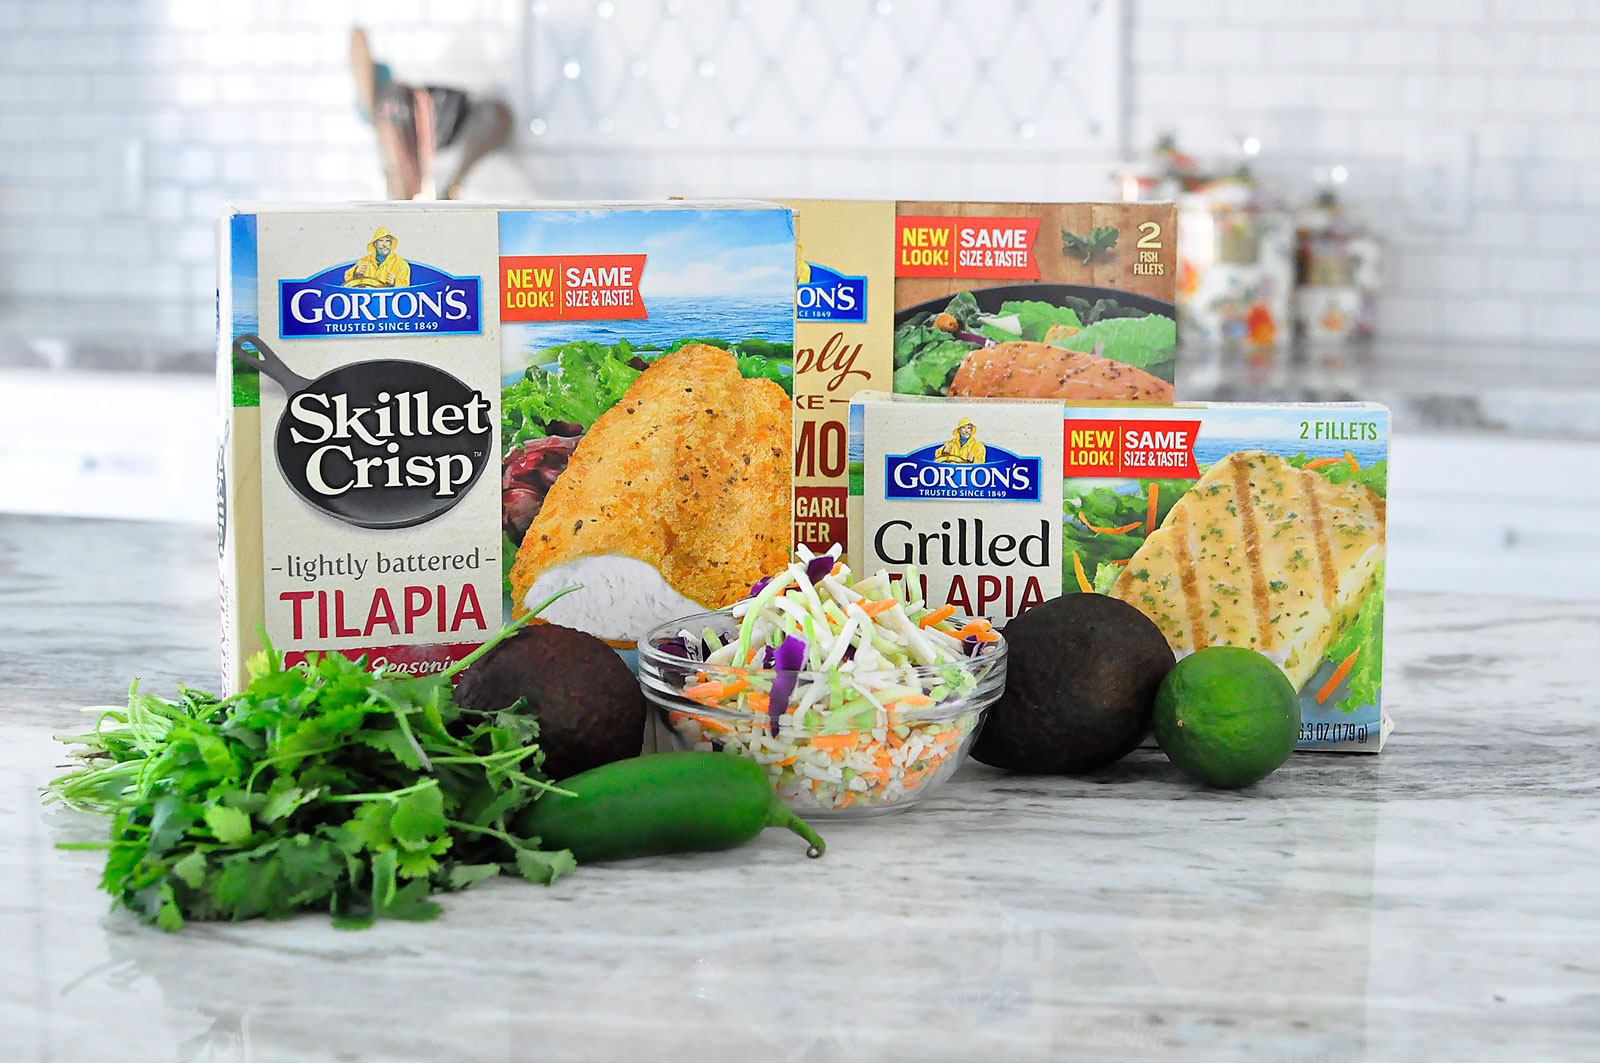 Gorton's Skillet Crisp Lightly Battered Tilapia- a healthy choice for those on Weight Watchers.